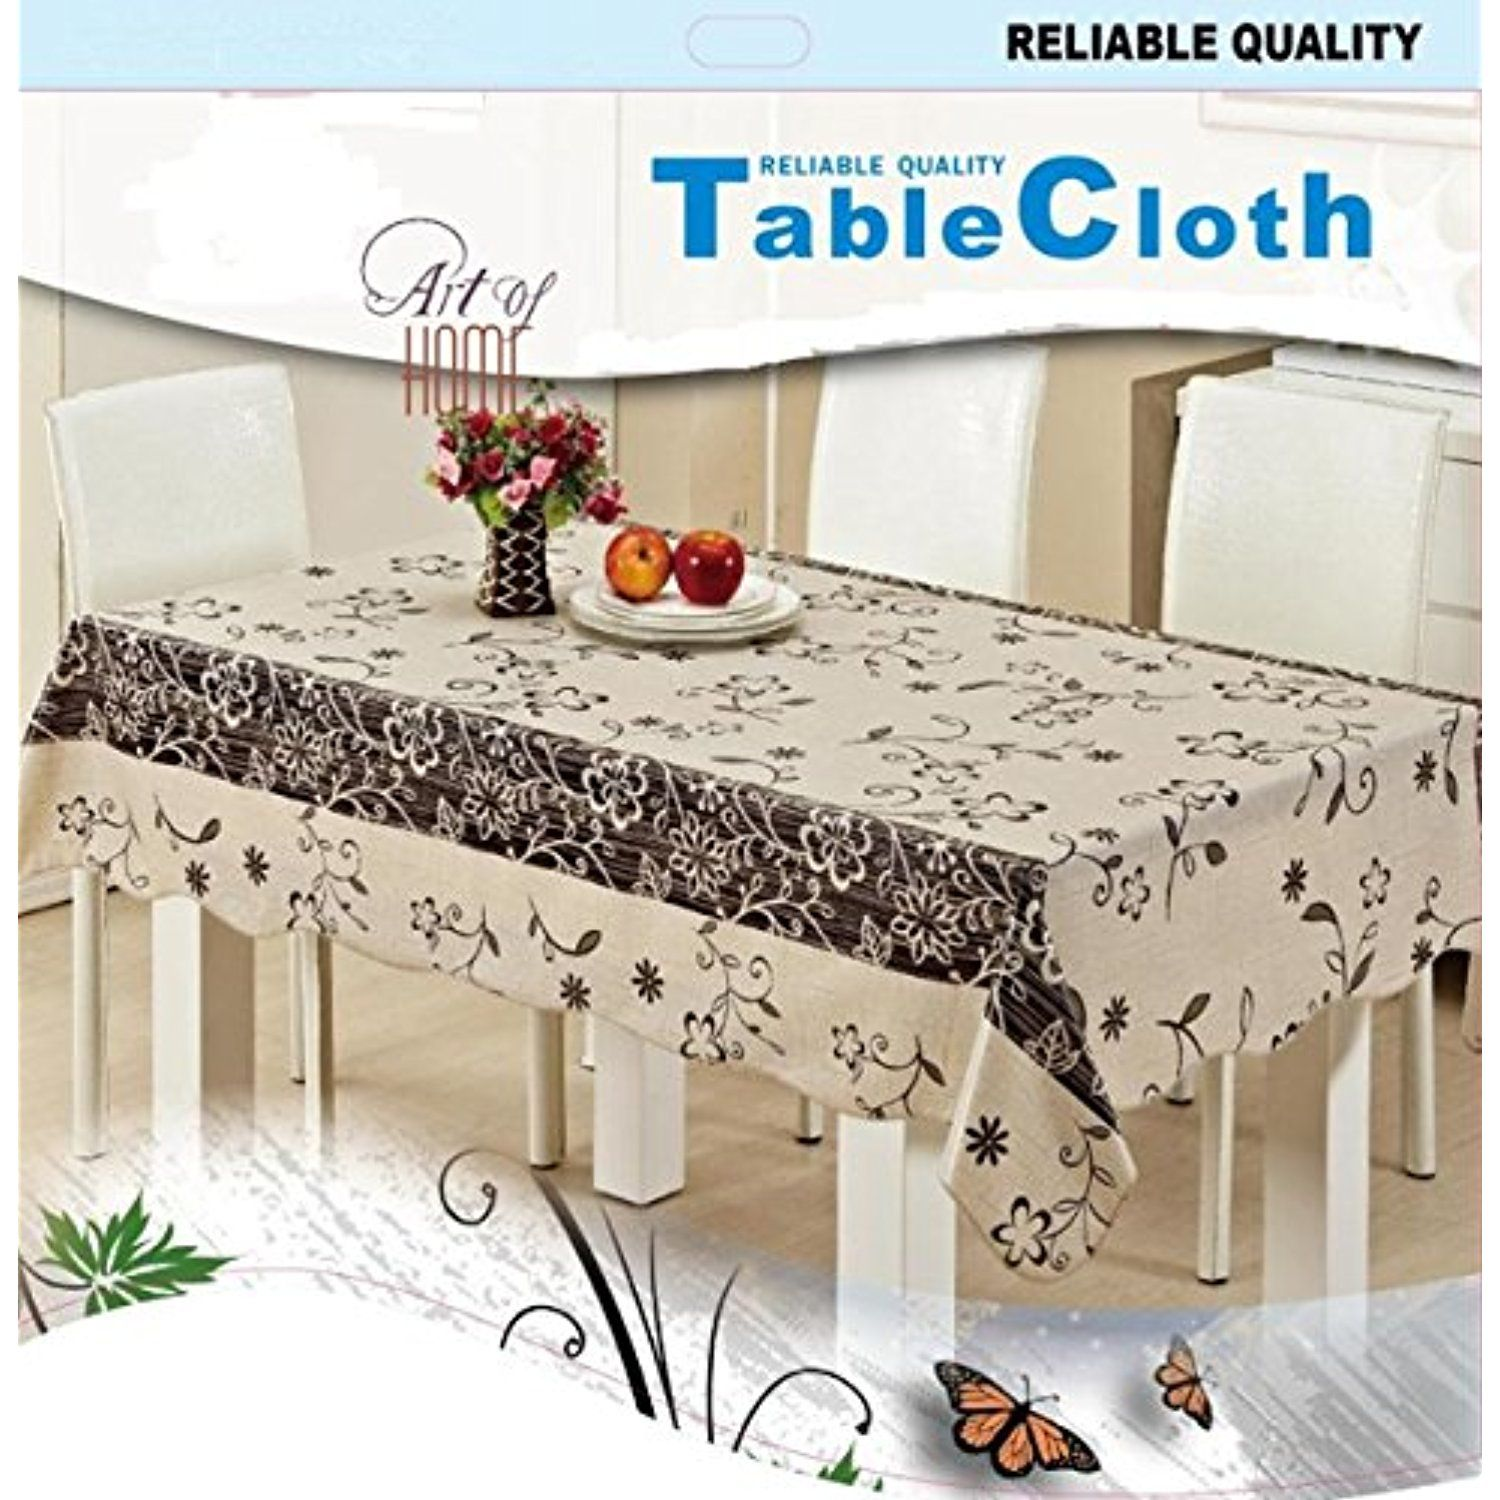 Effortlife Flannel Backed Vinyl Tablecloth Waterproof Oil Proof Pvc Table Cover Rectangle 42 X60 Spring Flower Table Covers Table Cloth Vinyl Tablecloth